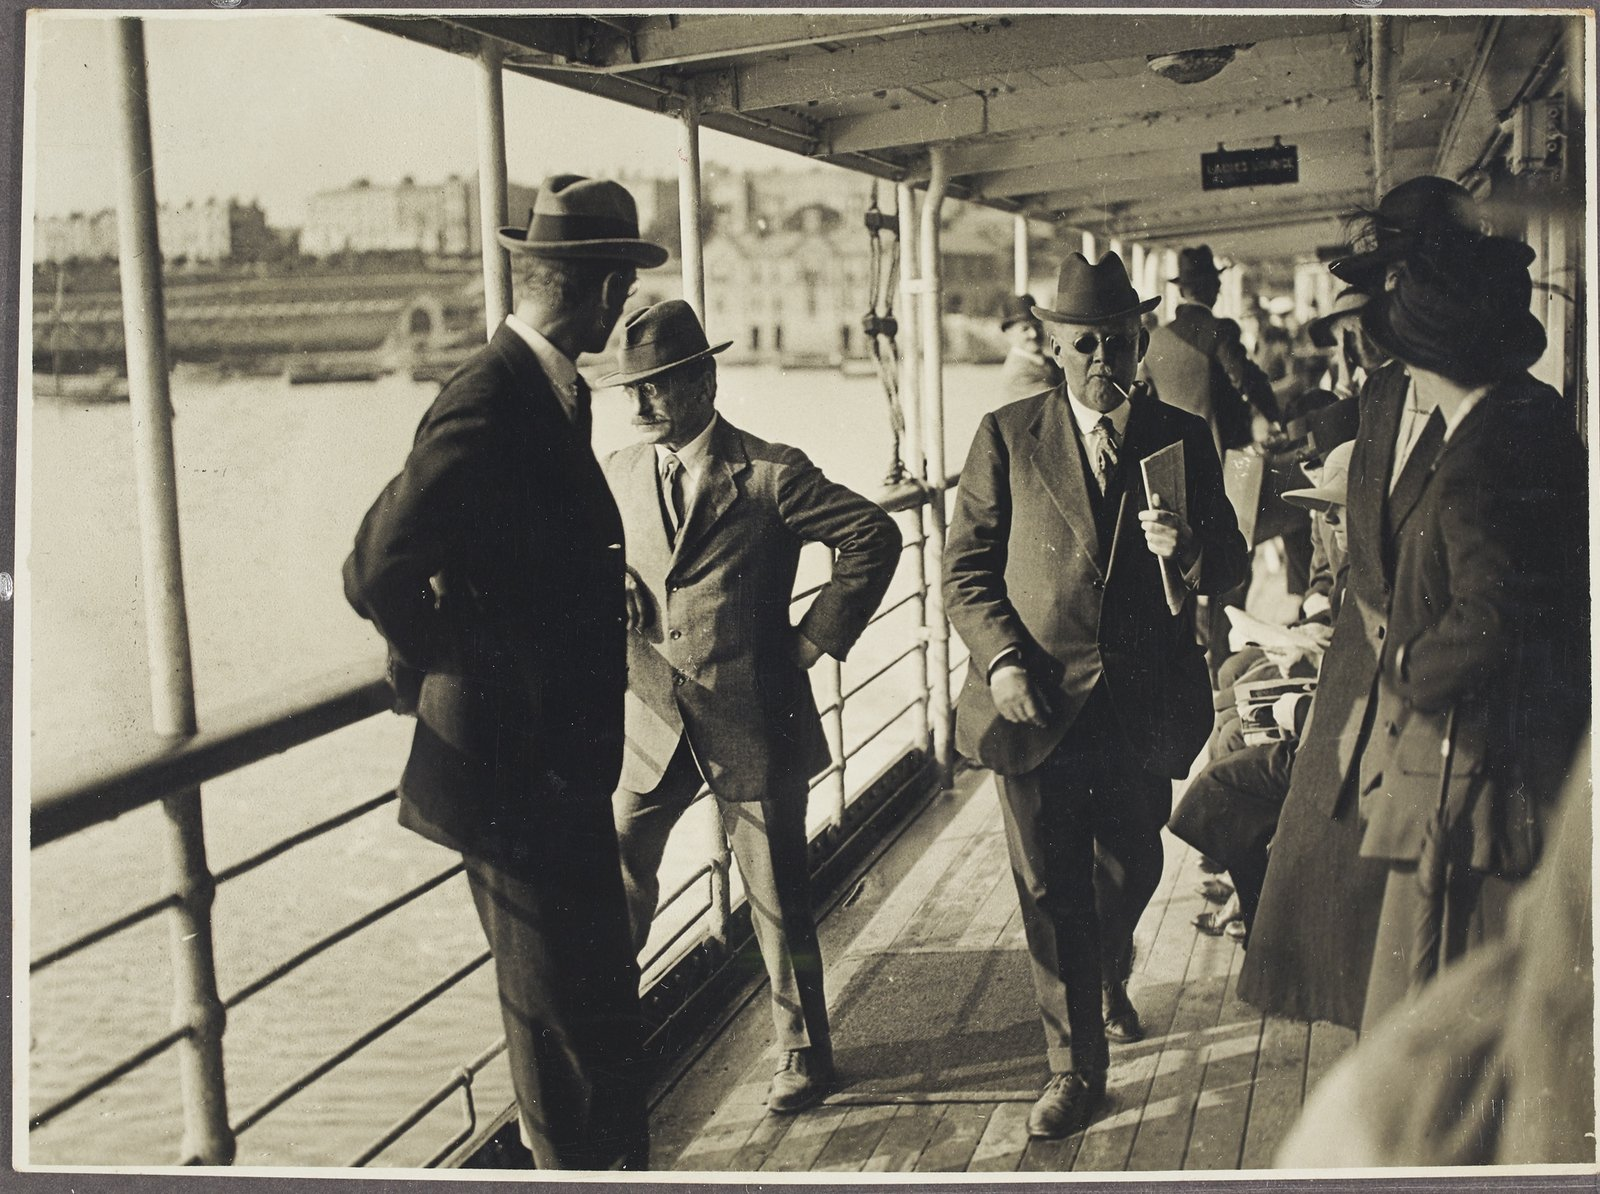 Image - Éamon de Valera and Arthur Griffith leaving Dublin on board the Curraghmore mailboat in July 1921, the day after the truce comes into effect, en route to negotiate with Lloyd George. Image courtesy of the National Library of Ireland